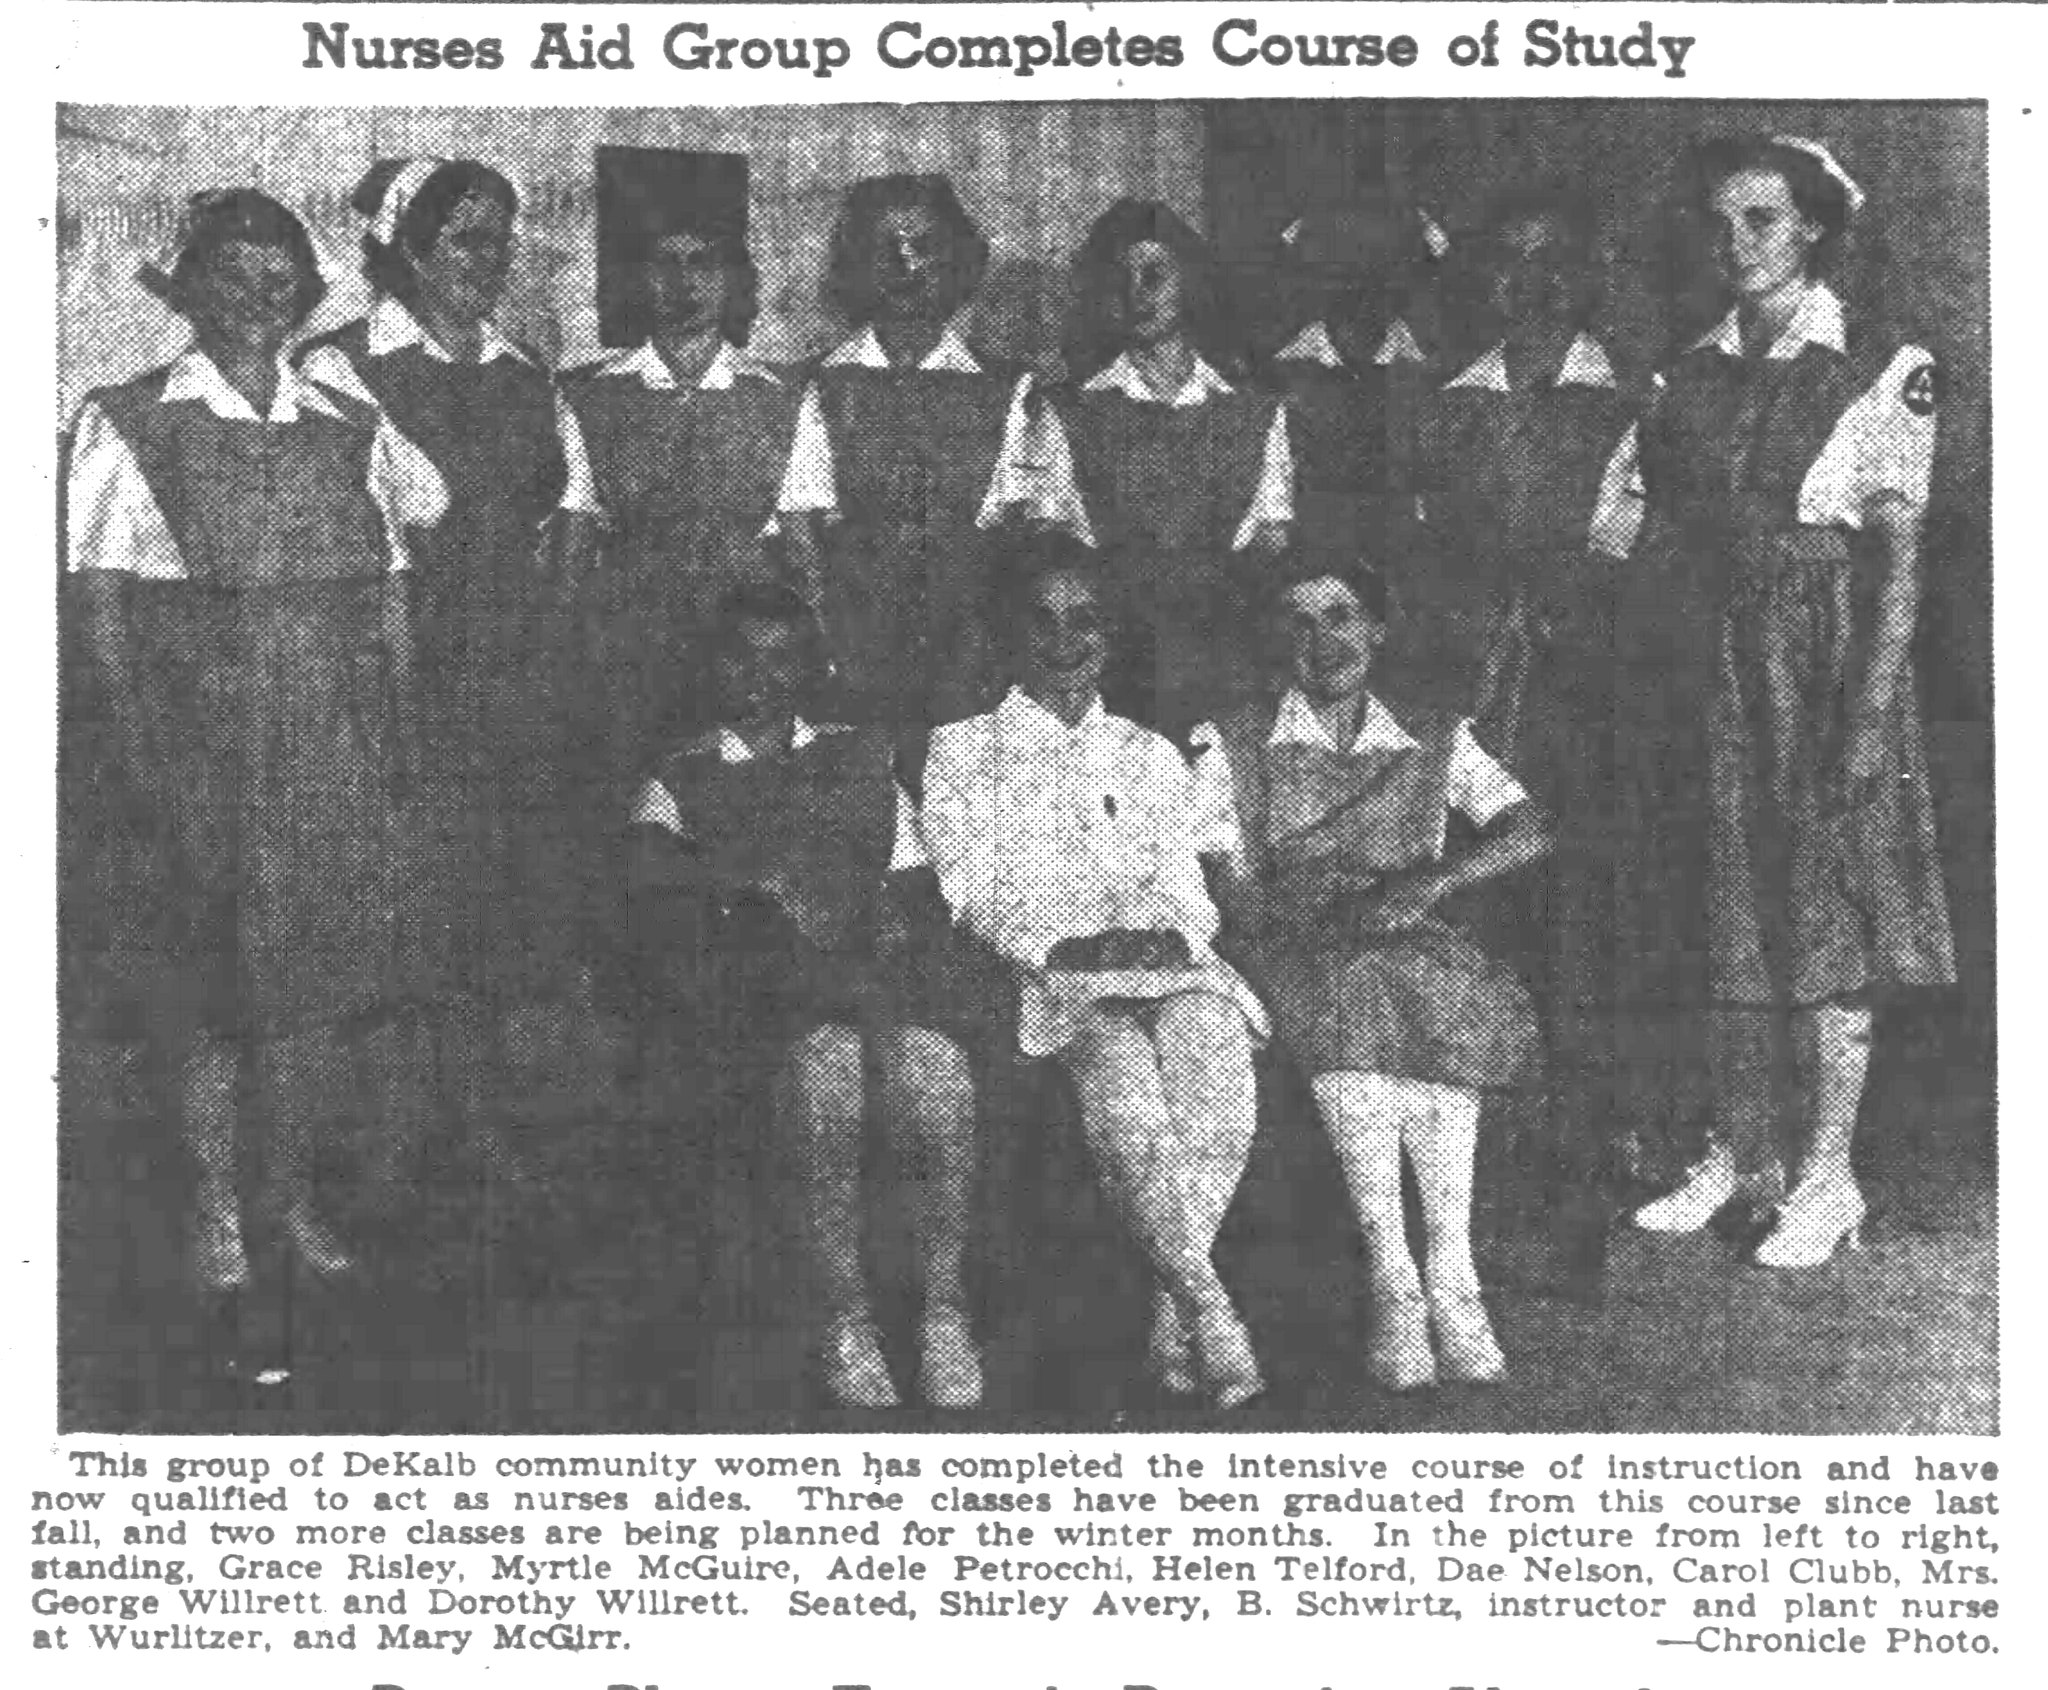 Volunteer Nurse's Aides of DeKalb 1943